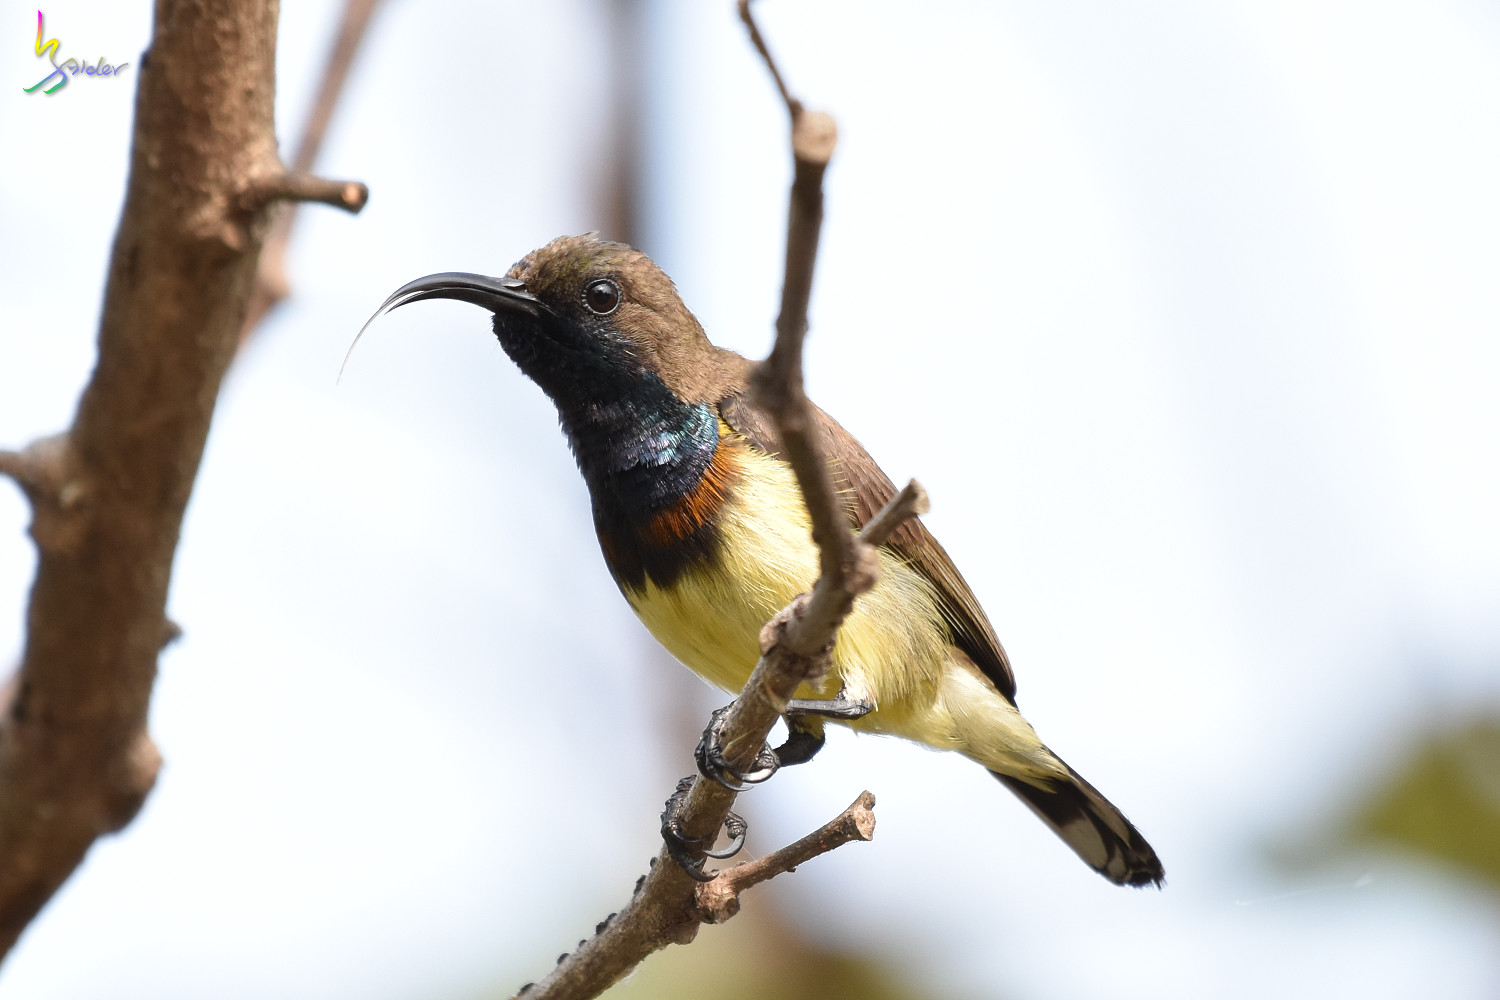 Olive-backed_Sunbird_0862